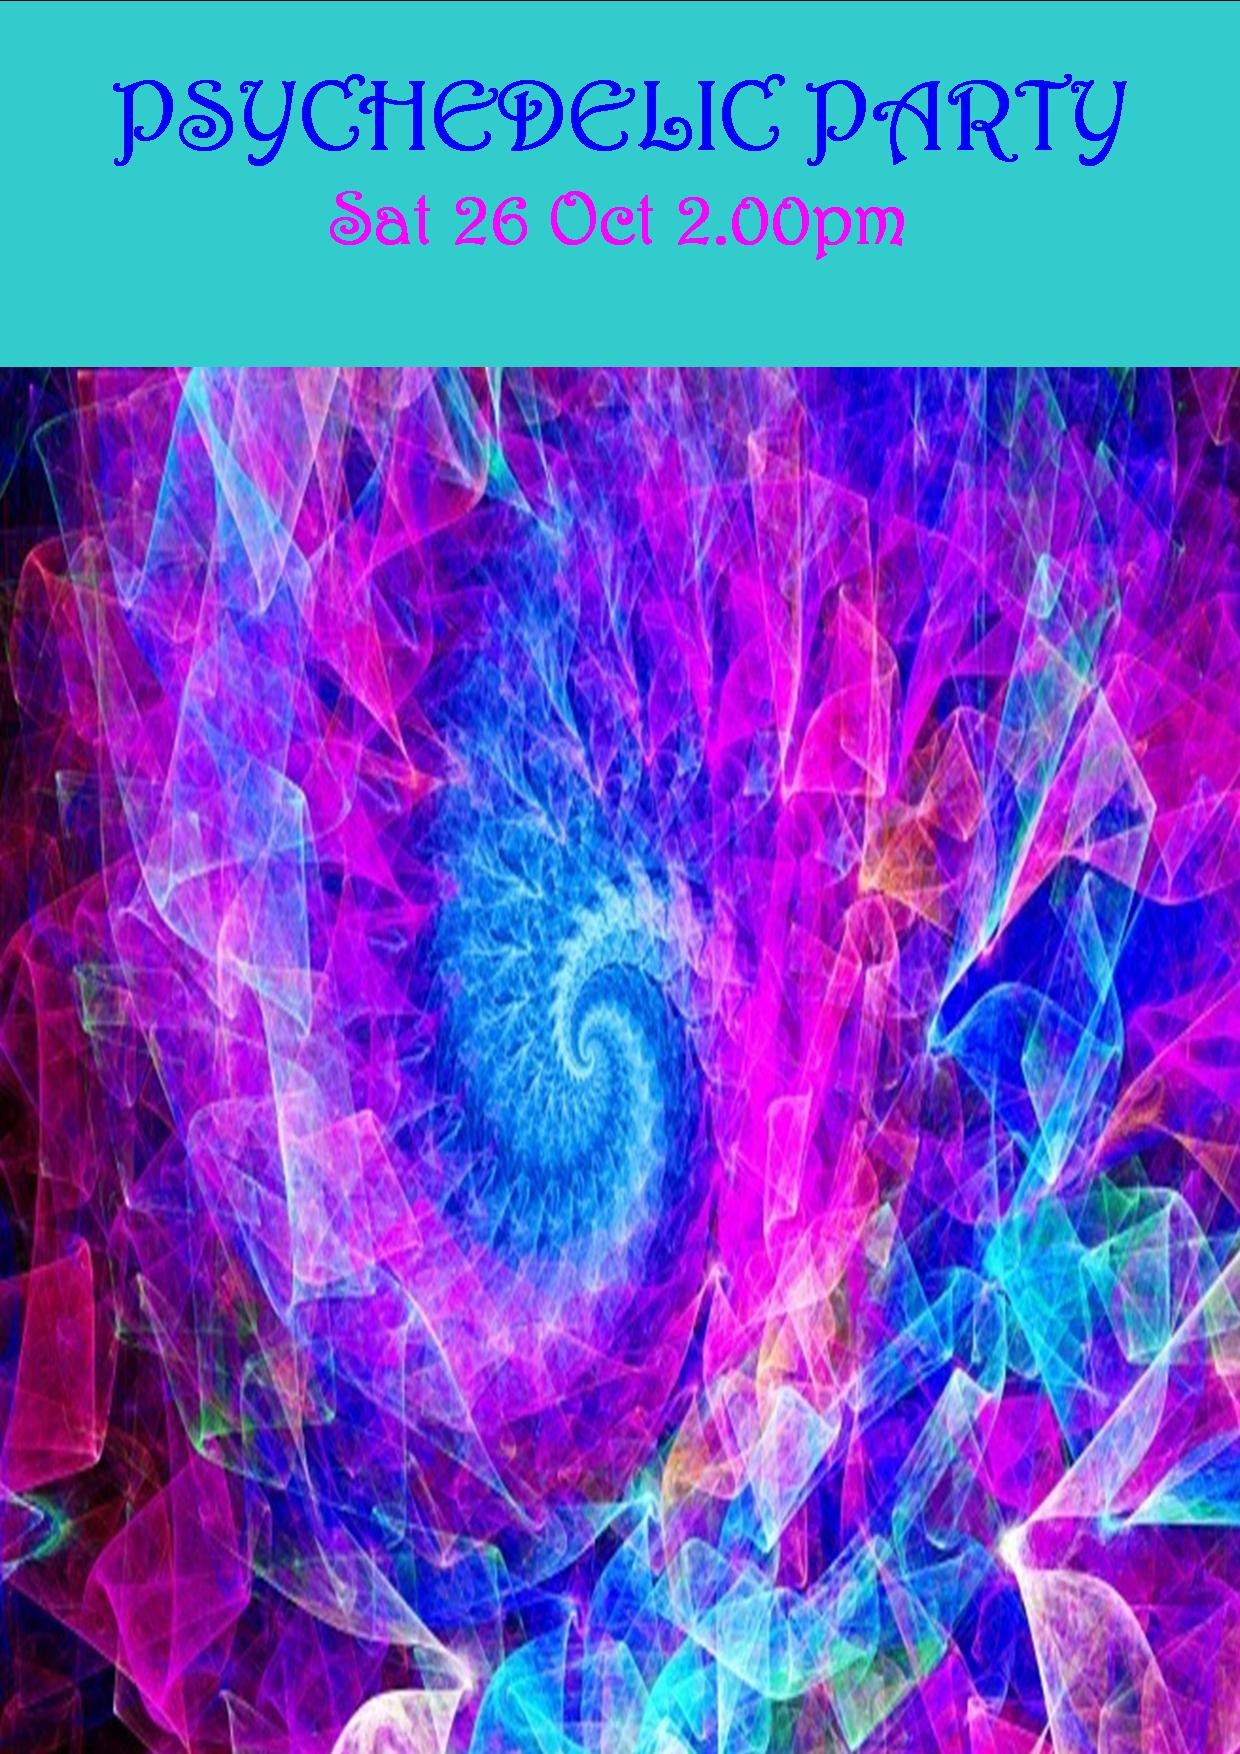 PSYCHEDELIC PARTY SAT 26 OCT 2.00PM!